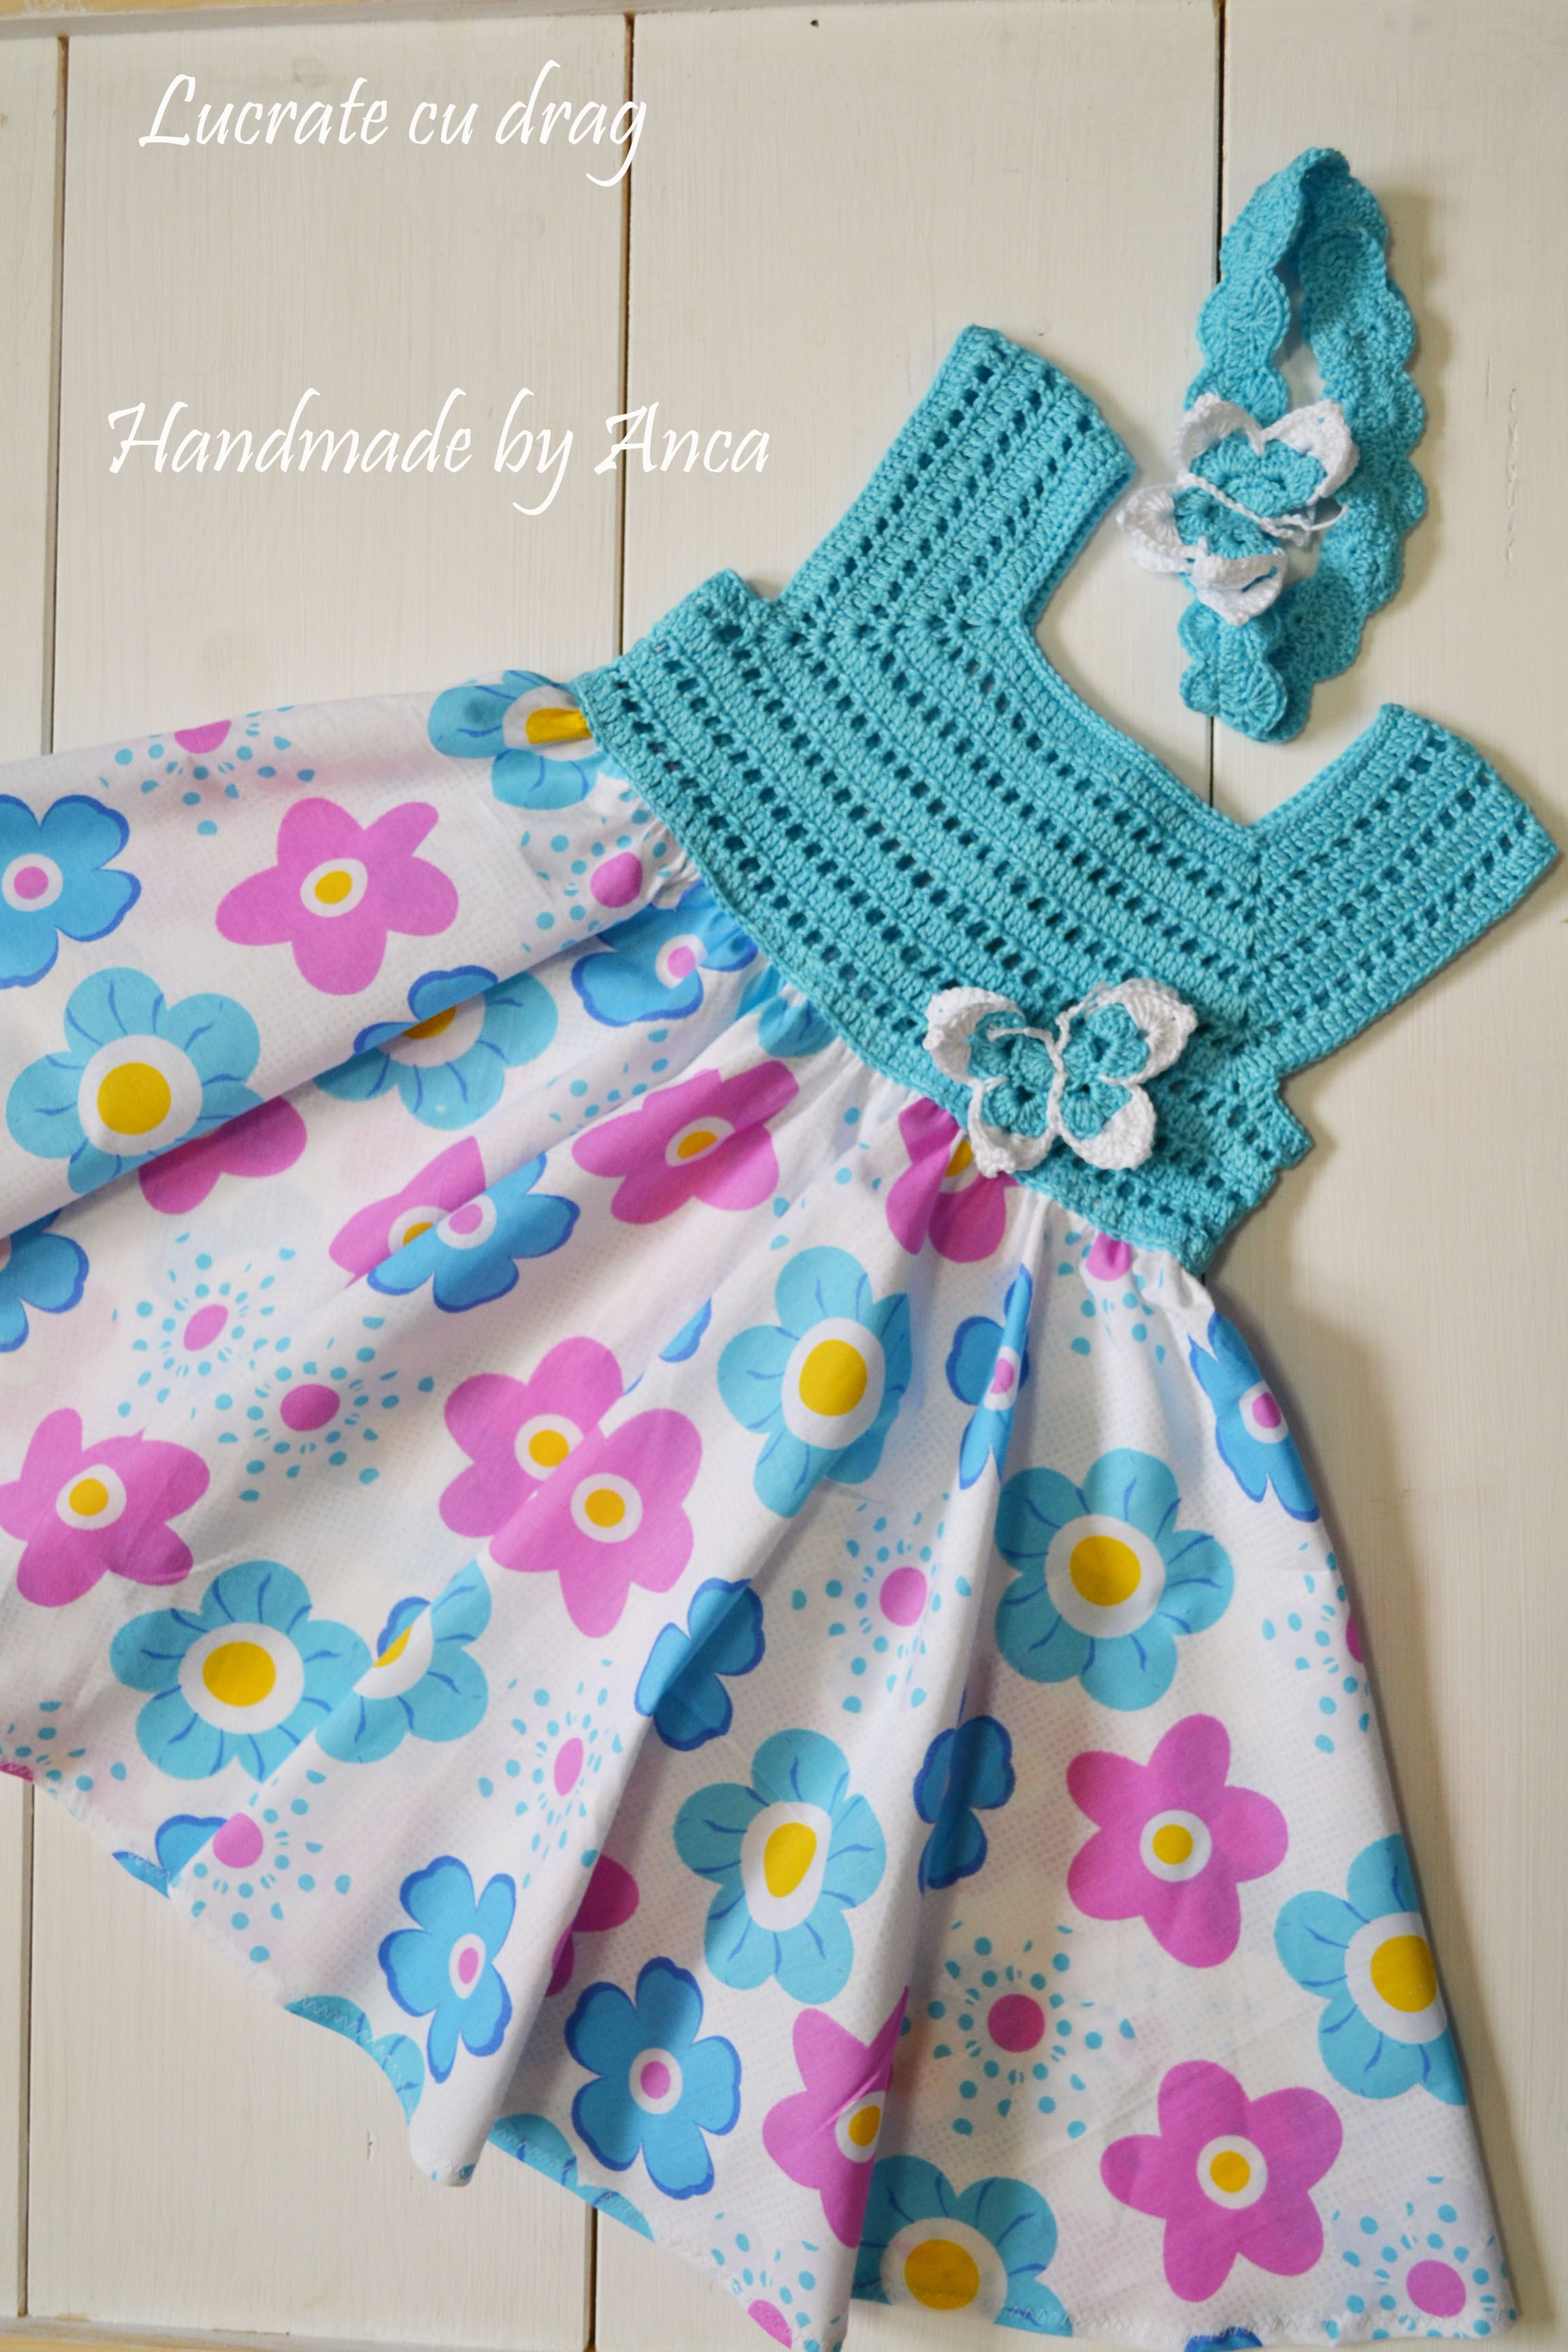 10 free crochet and fabric dress patterns crochet yoke summer discover thousands of images about handmade by anca bankloansurffo Image collections